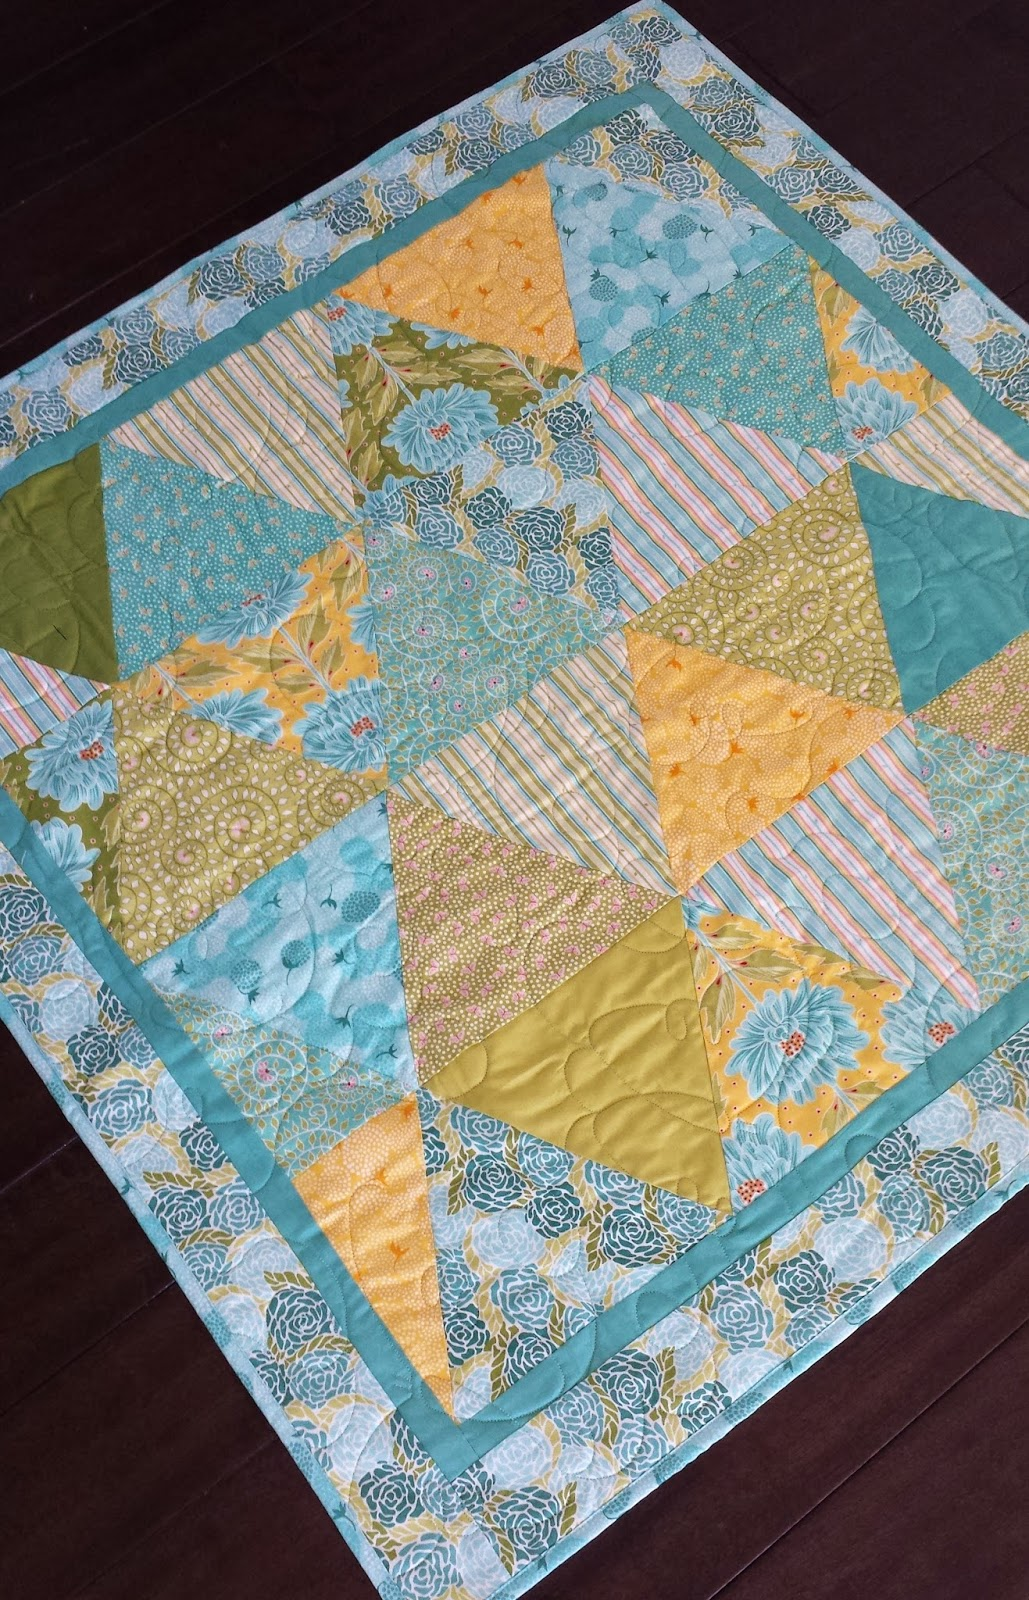 Serena Bean Quilts Equilateral Triangle Quilt Tutorial